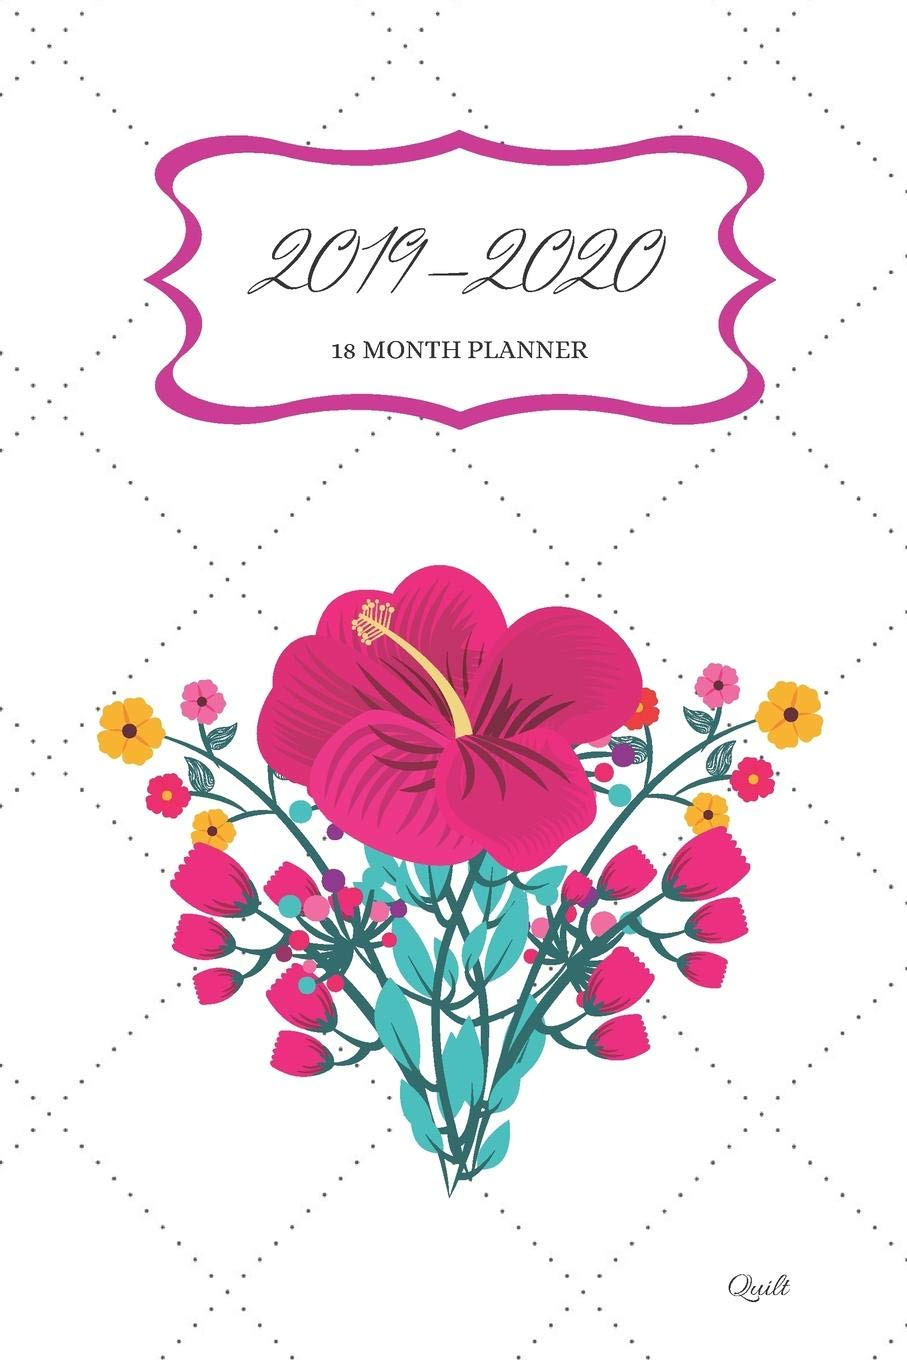 2019 - 2020 18 Month Planner; Quilt: US Month to View ...